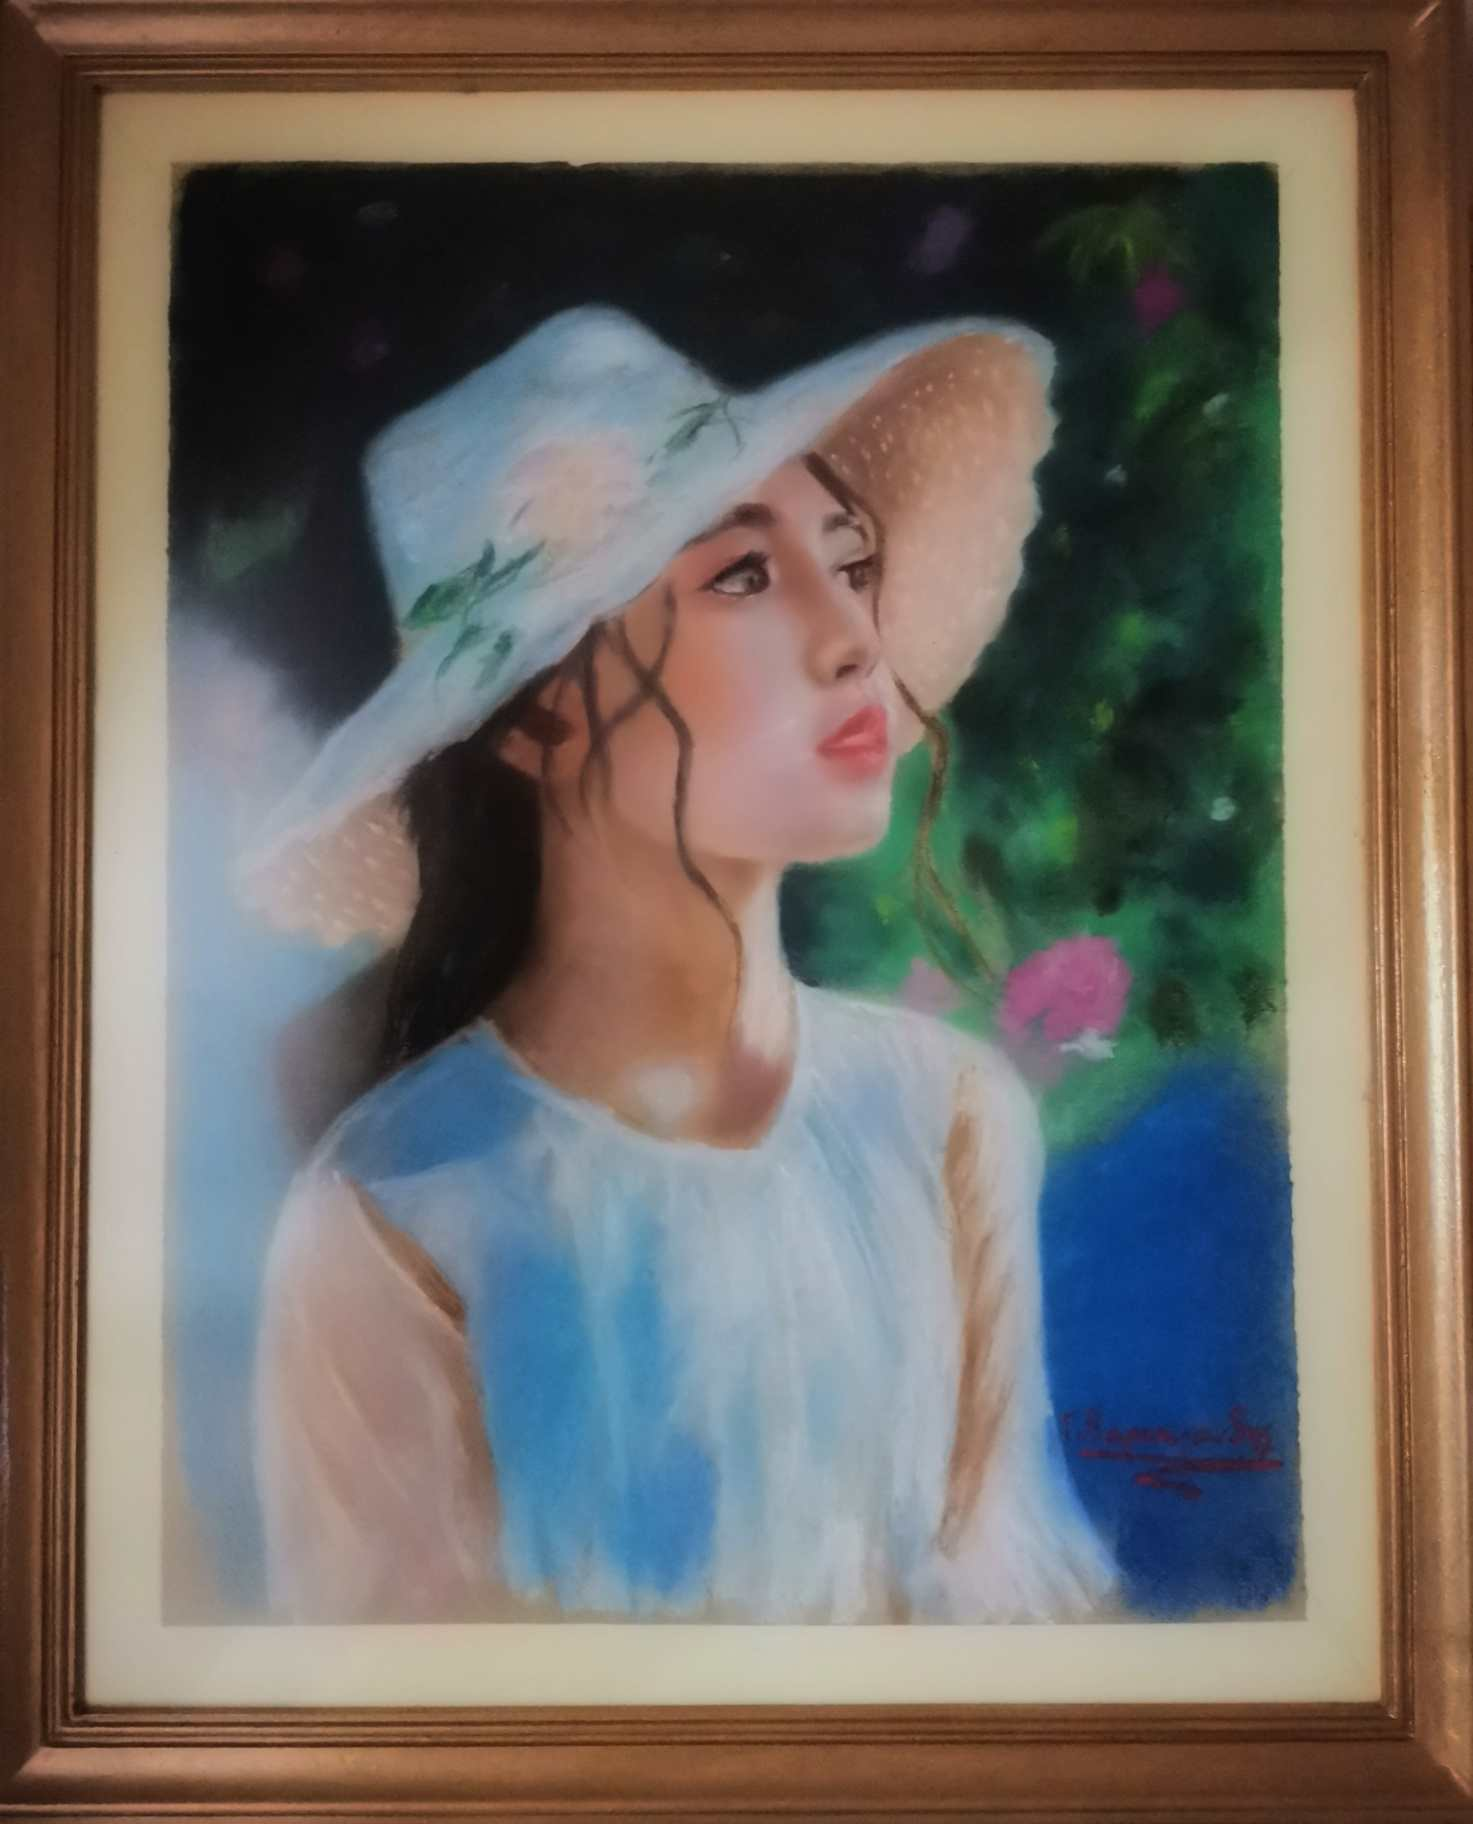 custom portrait painting commission from photo of a woman (framed) by an artist